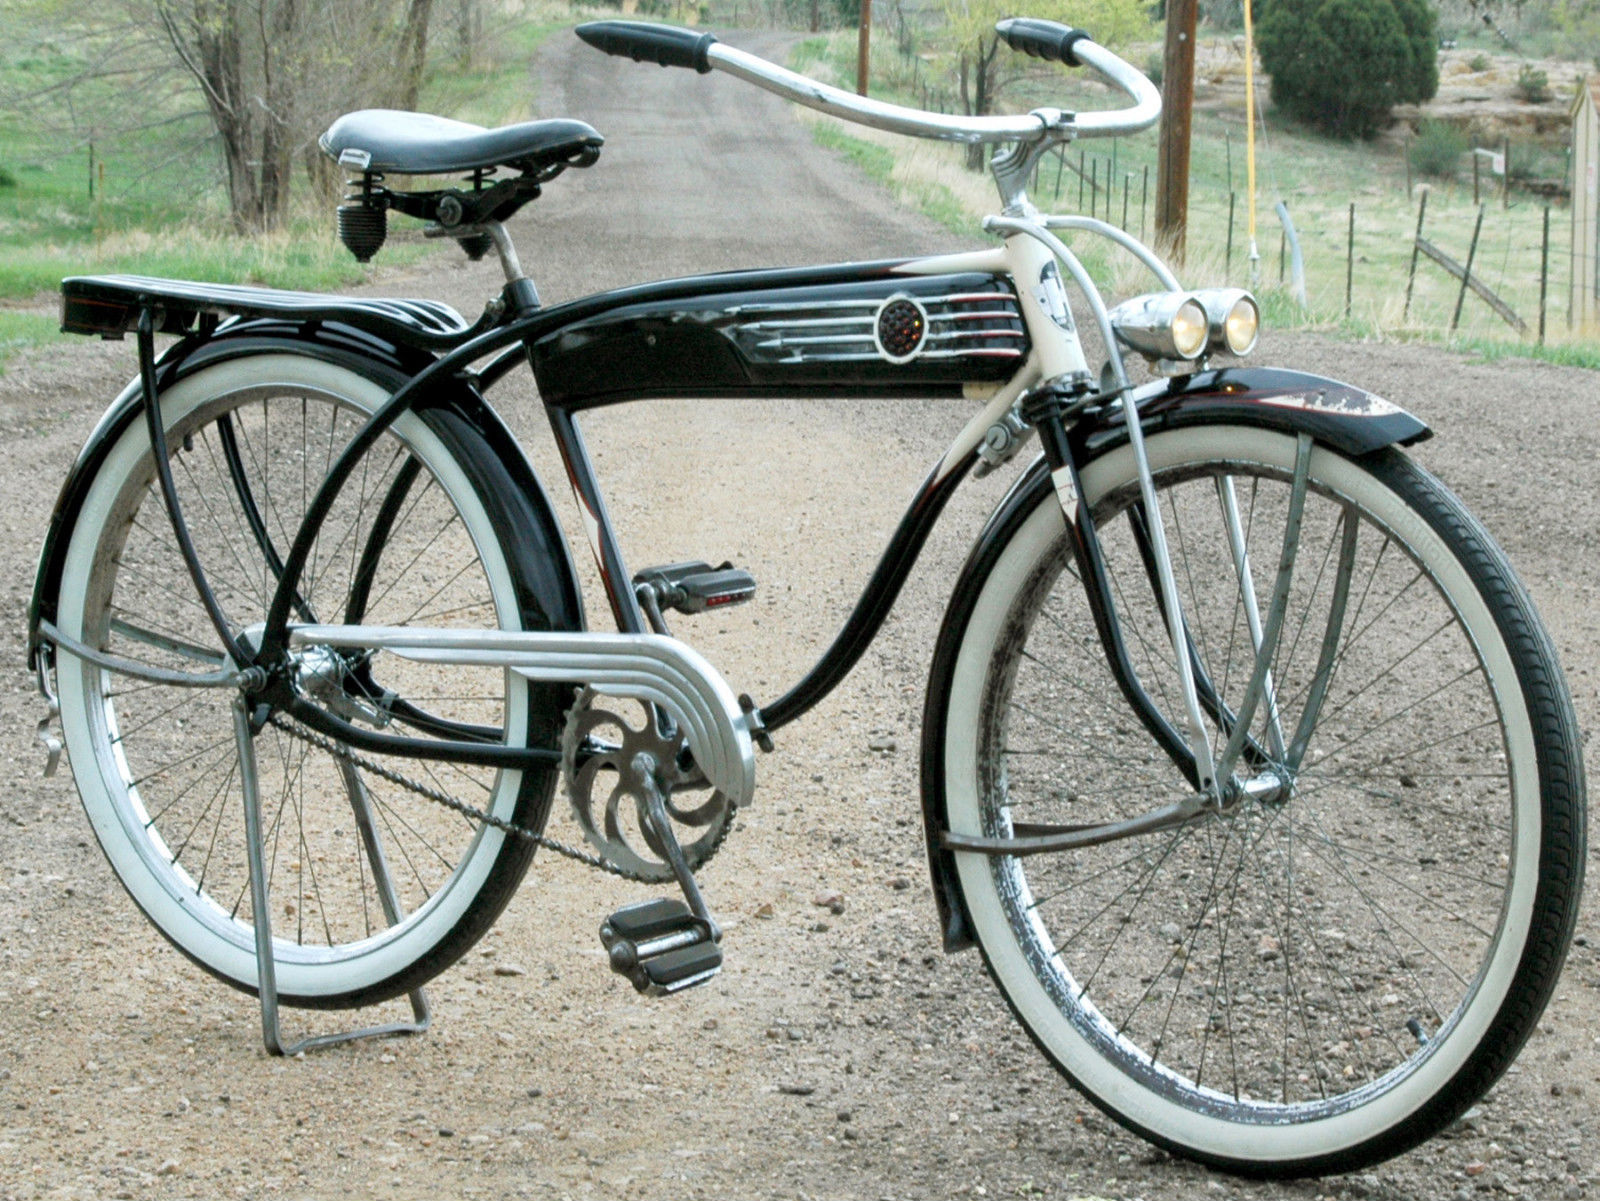 Bikes Schwinn Raleigh Dealers The Schwinn cruiser was the